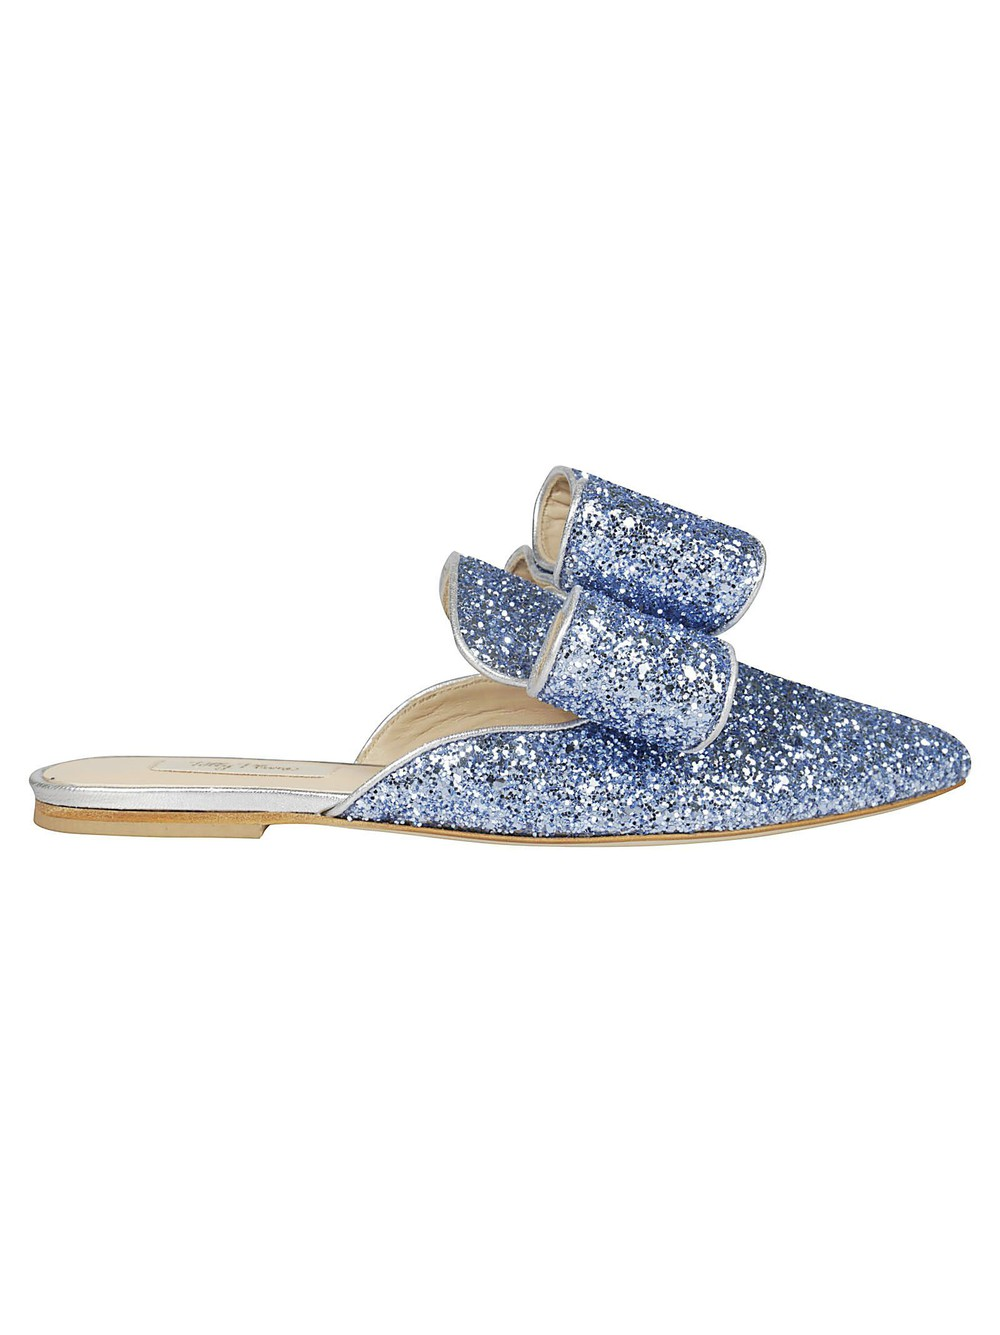 Polly Plume Betty Bow Mules in azure